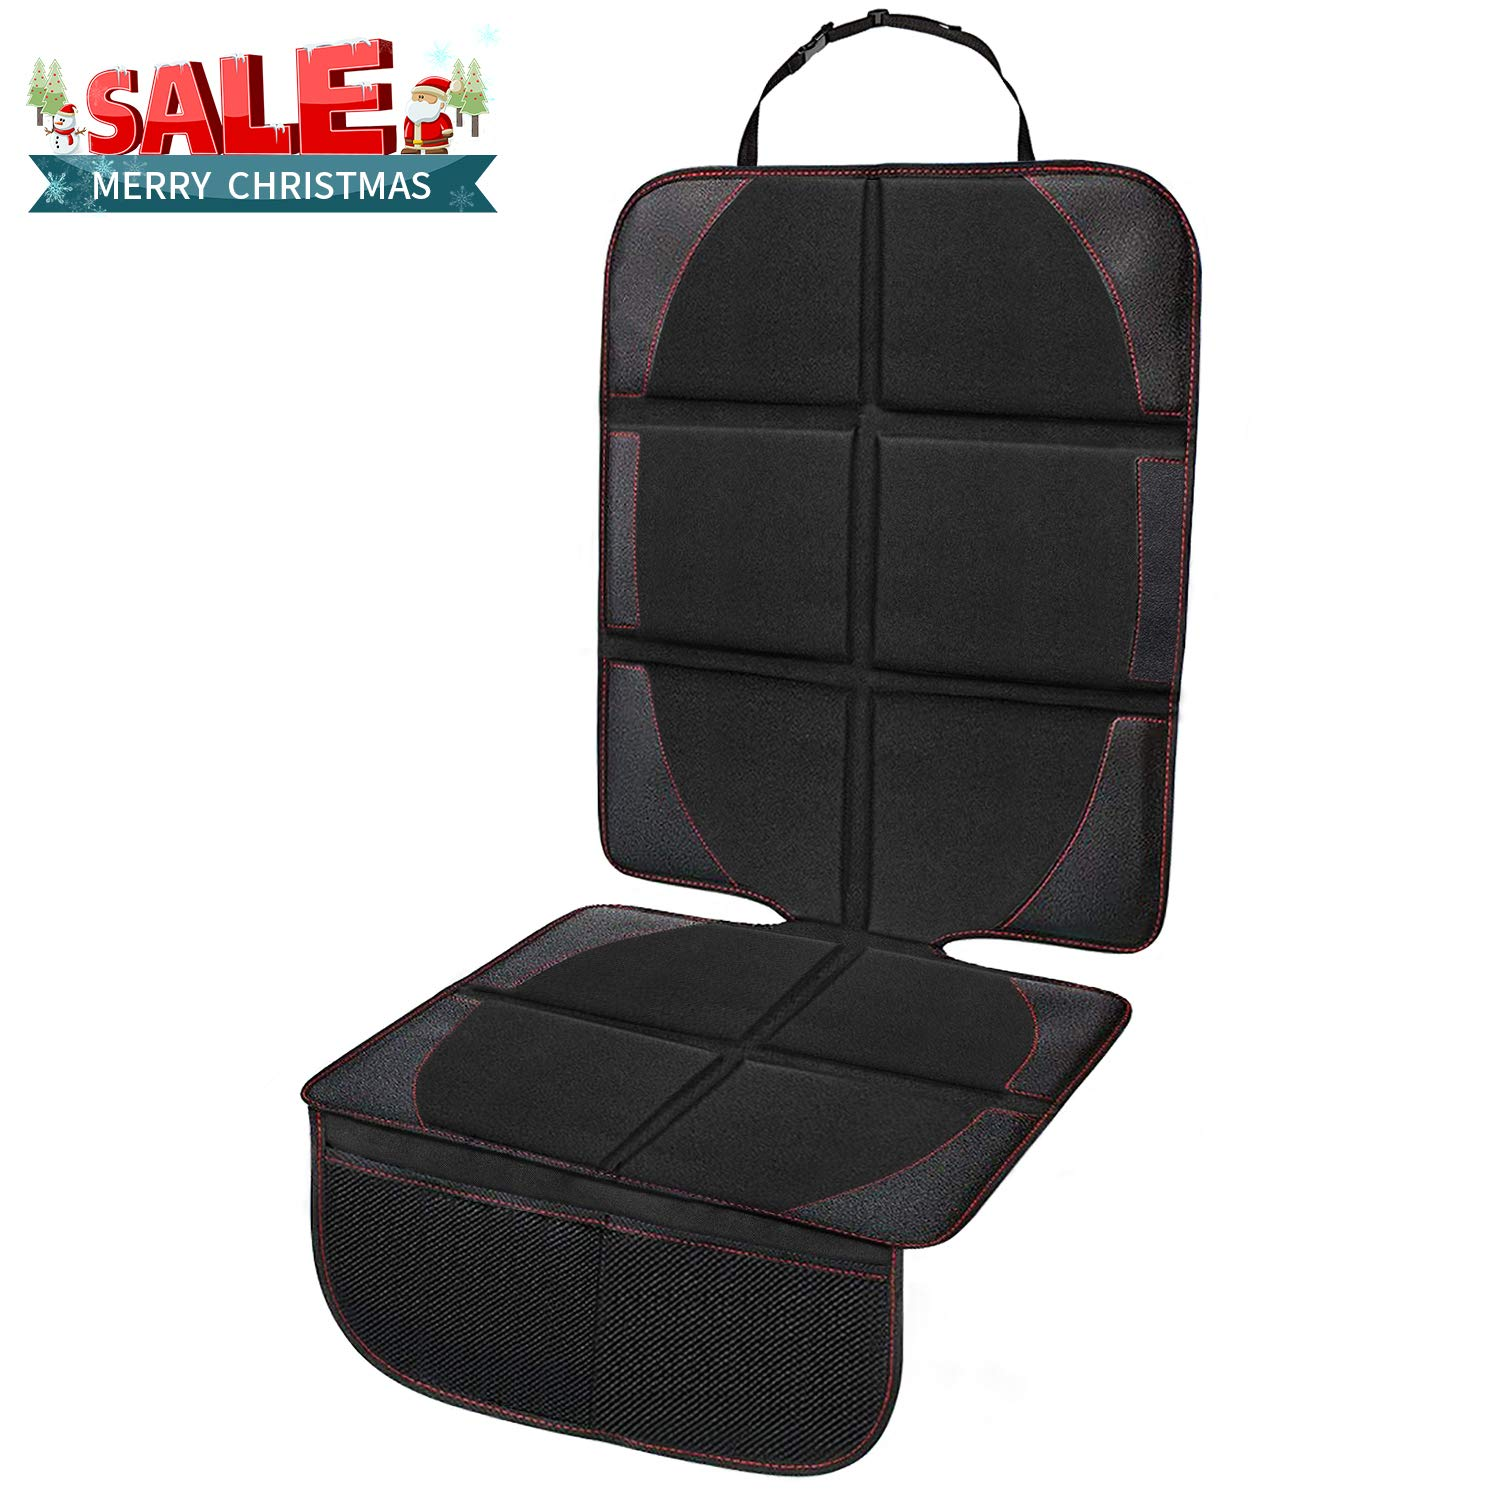 Ylife Car Seat Protector + Kick Mat Auto Seat Back Protector, Thickest Padding XL Size Car Seat Cover Pad, Waterproof Seat Guardian Kick Protector with Organizer Pockets